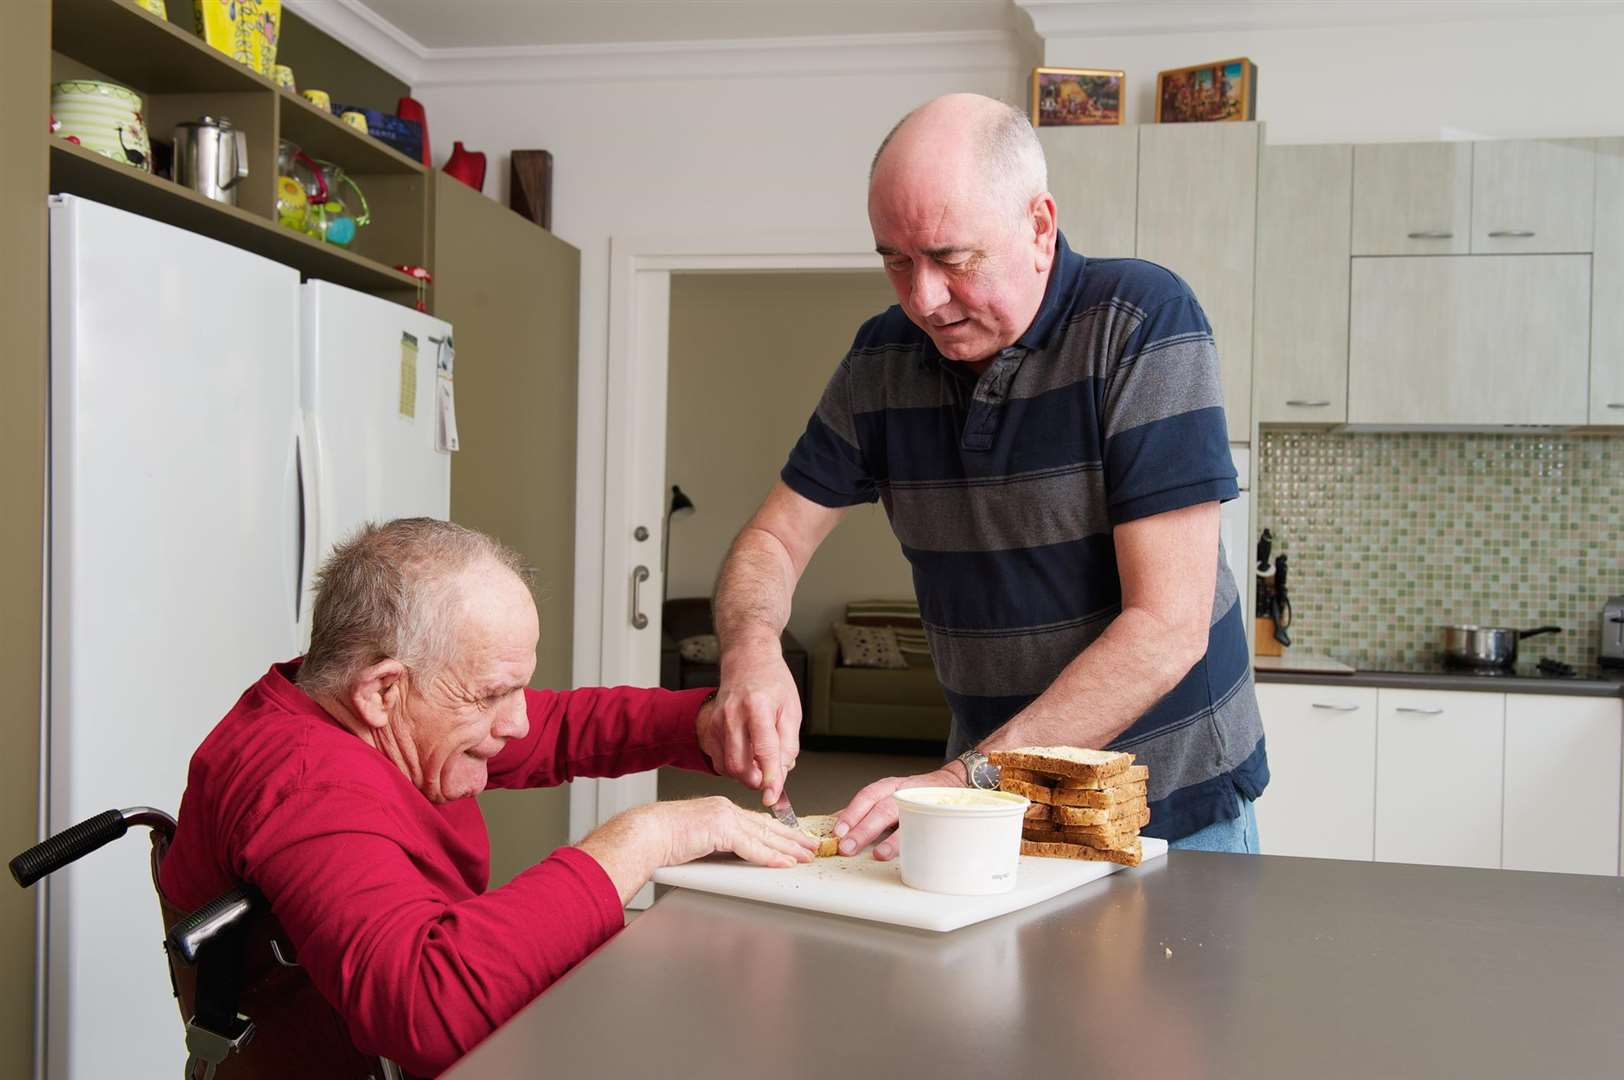 Unpaid carers can get additional support from Shared Lives